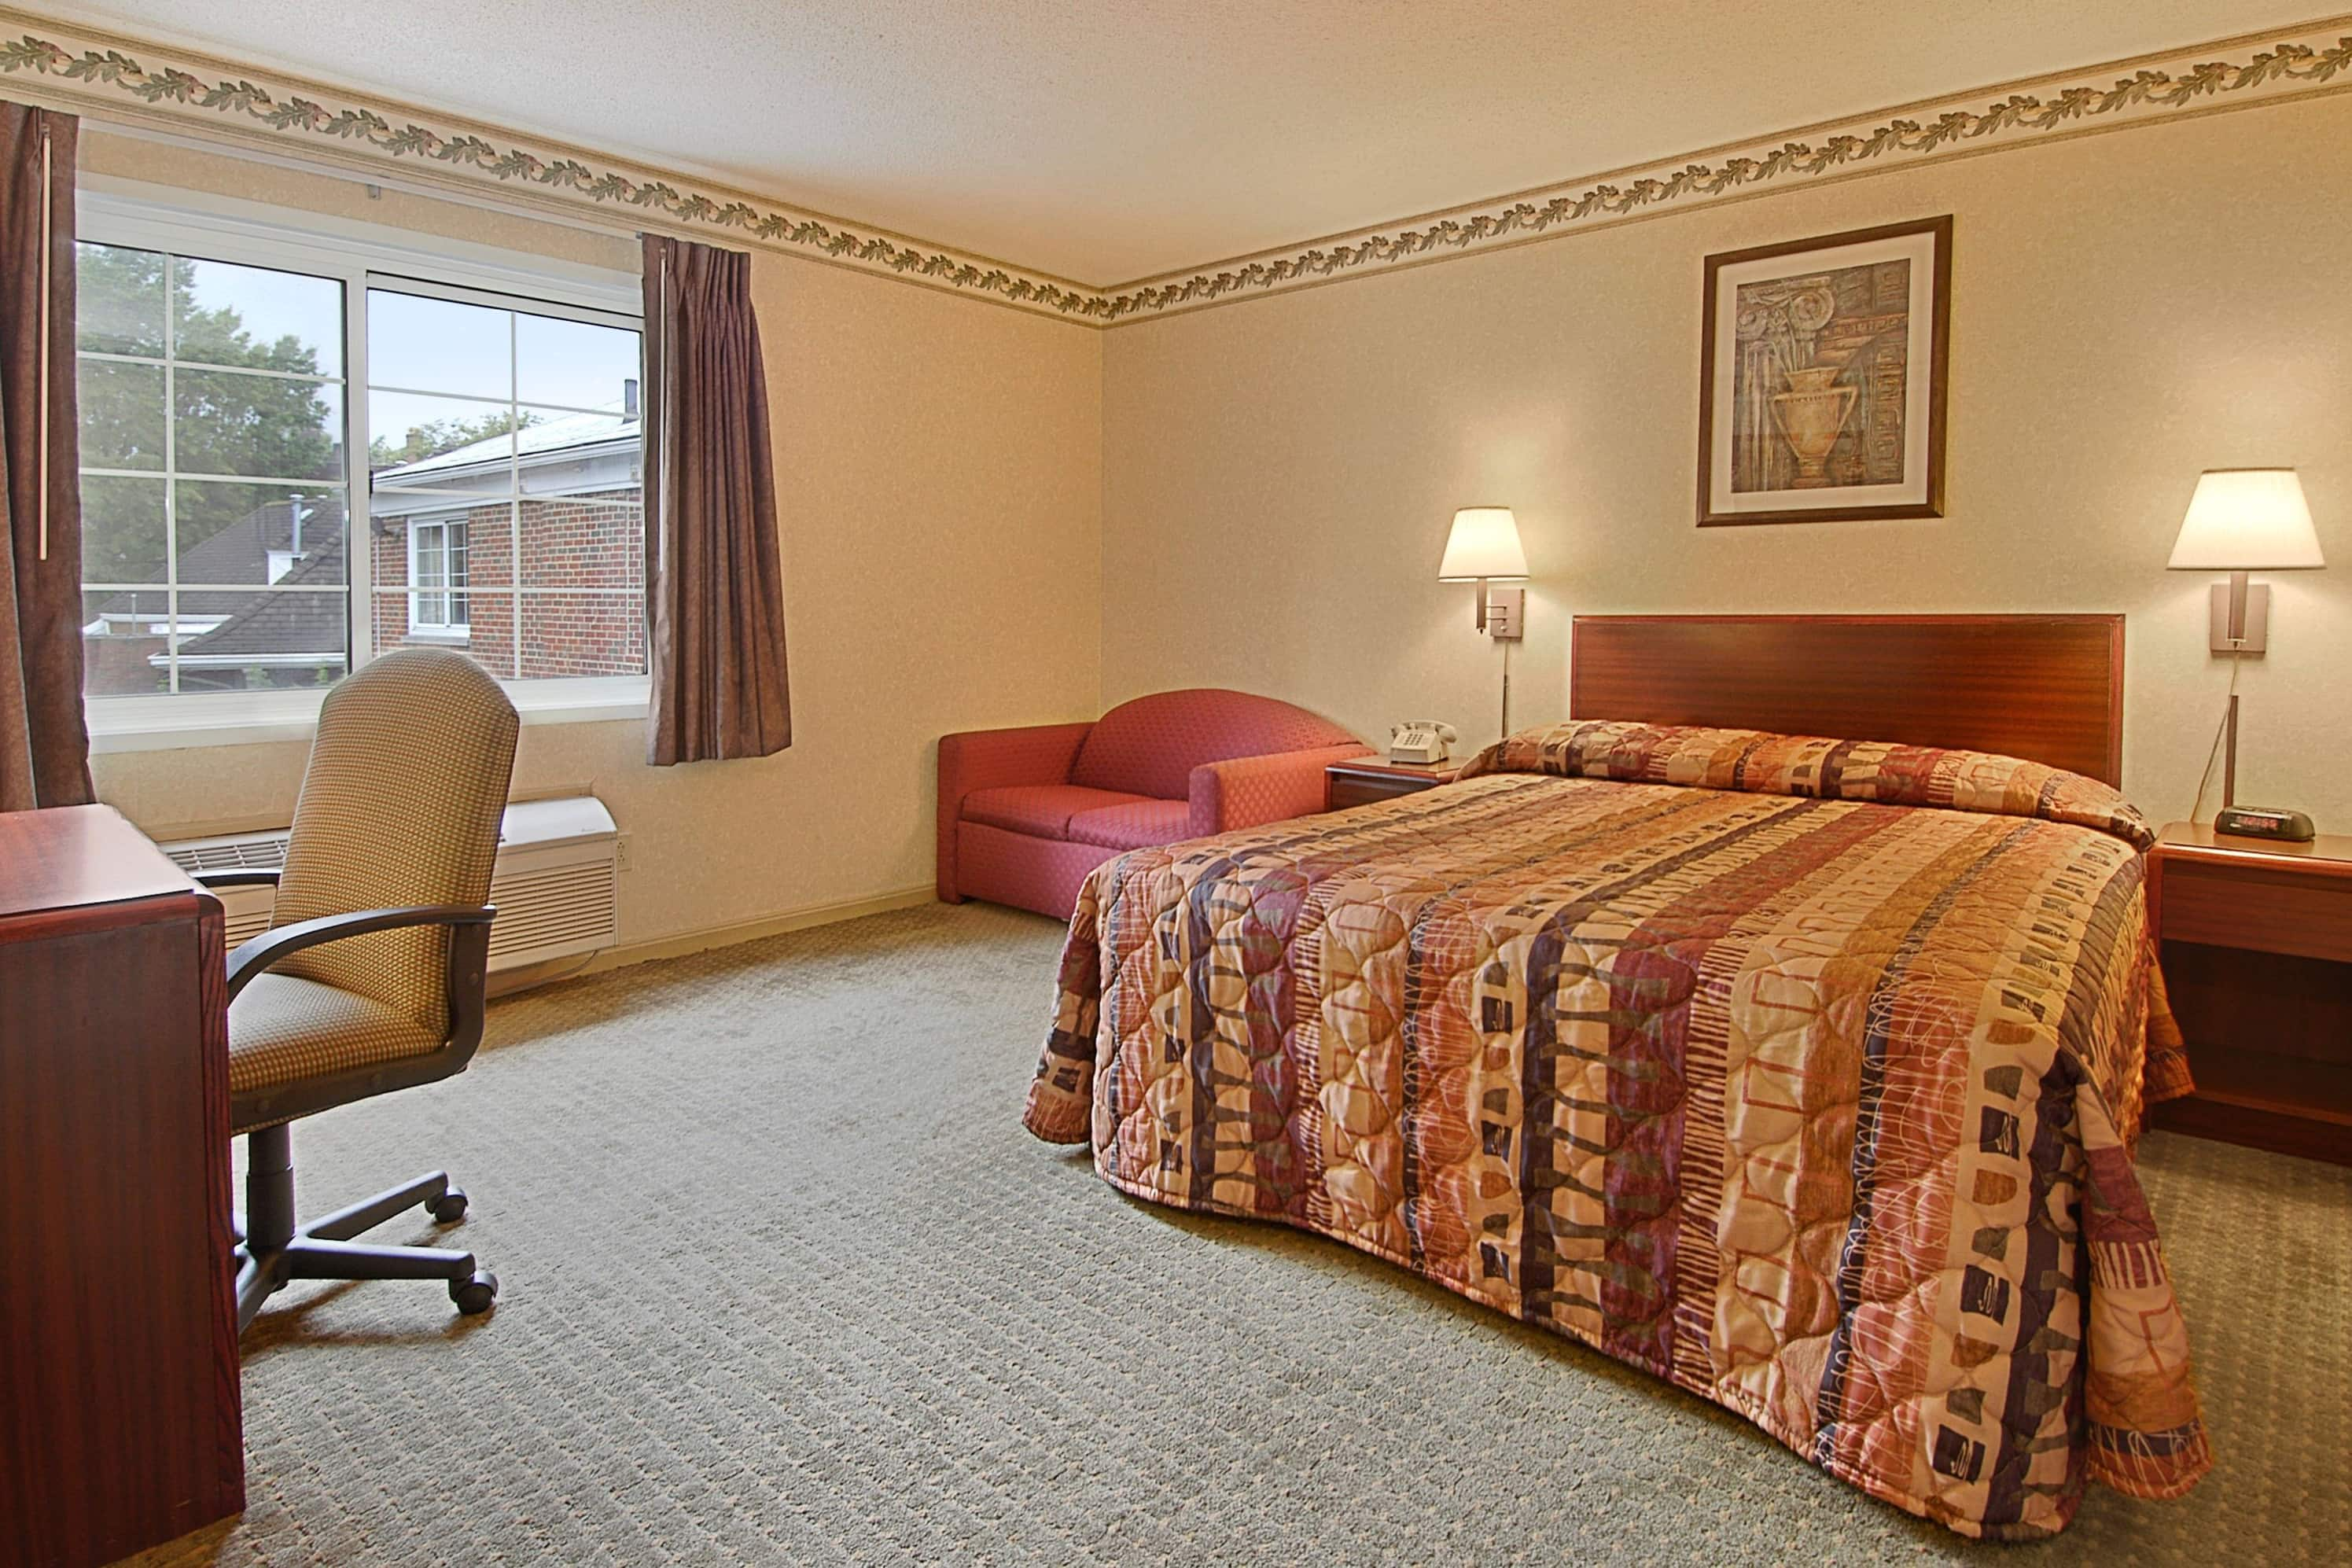 Guest room at the Days Inn Cleveland Lakewood in Cleveland, Ohio